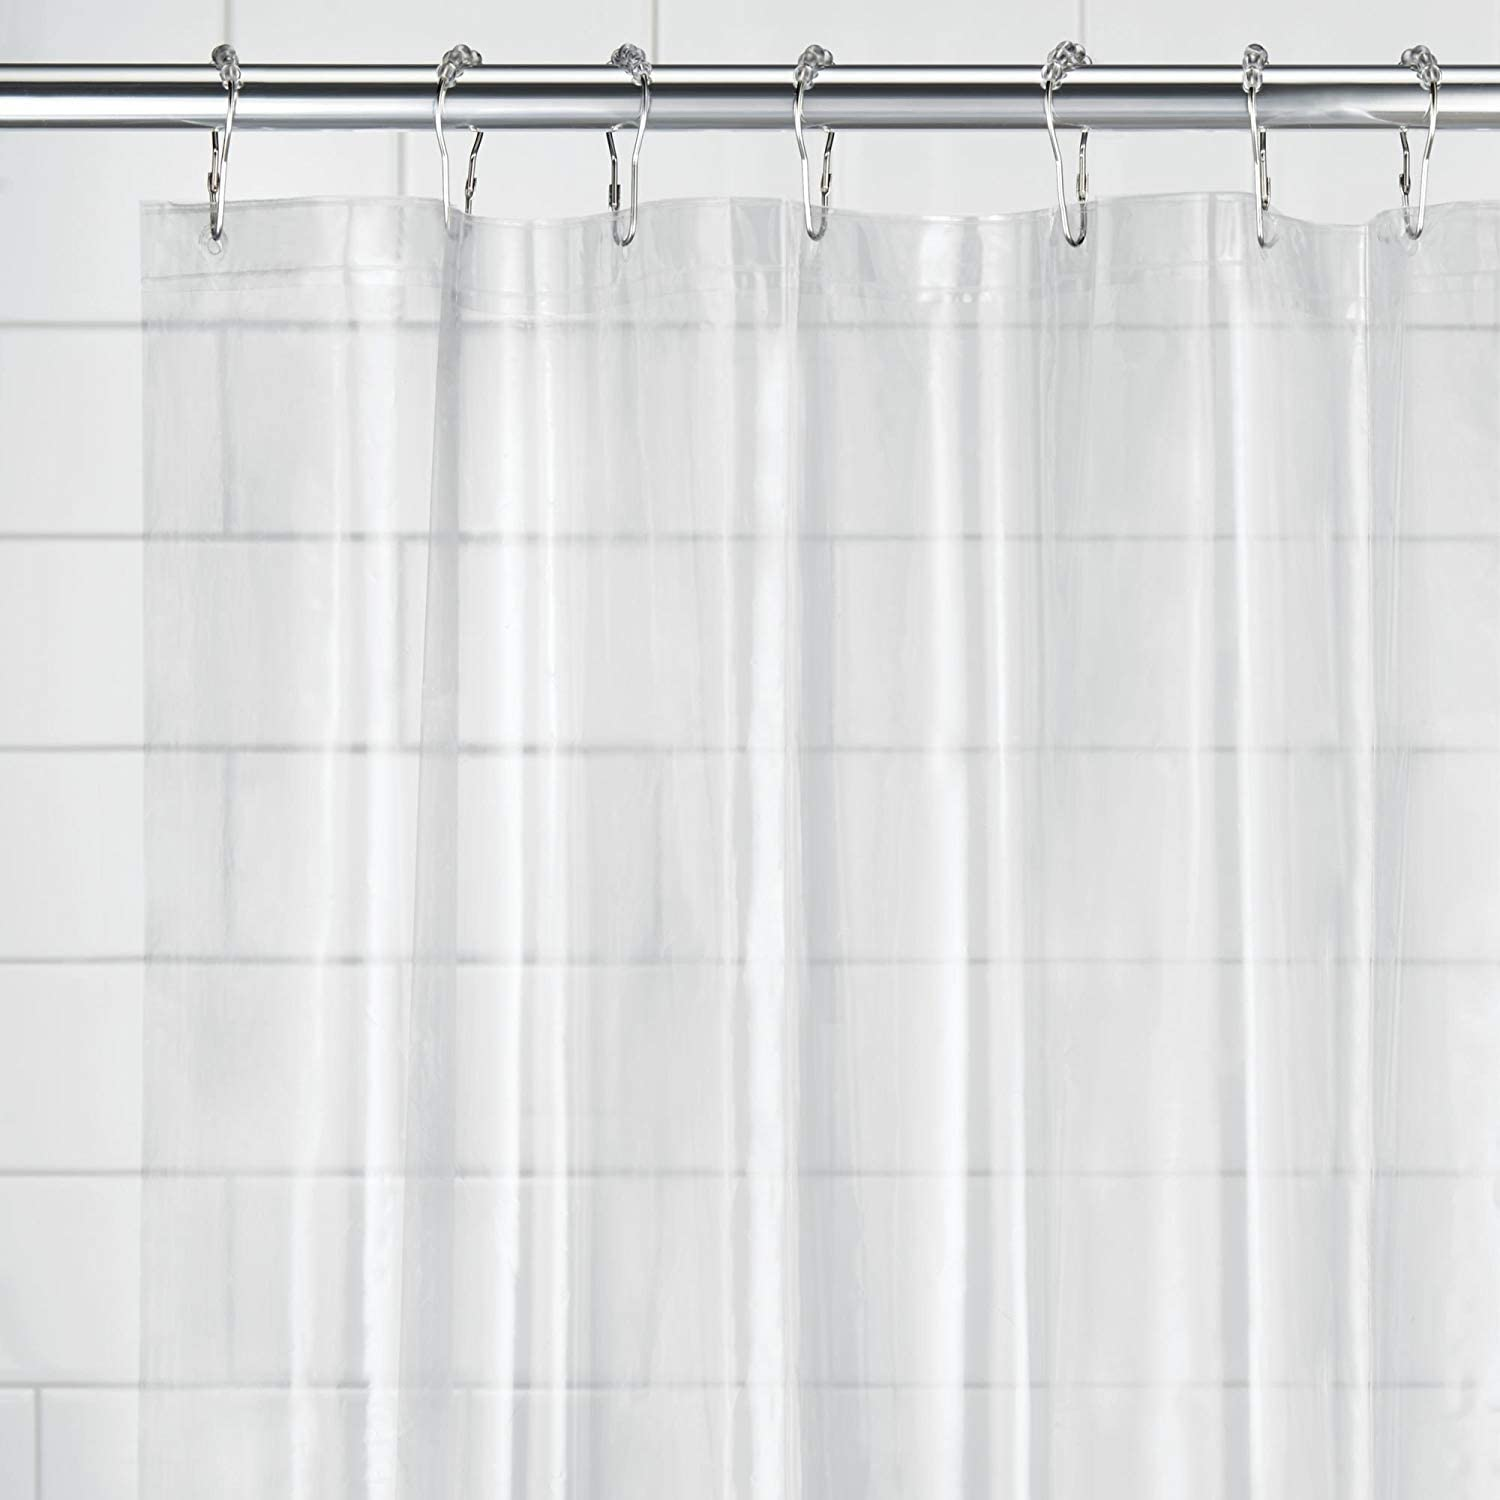 Mold and Mildew Resistant for use Alone or with Fabric Curtain for Master Standard iDesign PEVA Plastic Shower Bath Liner Guest Bathroom Clear Kids